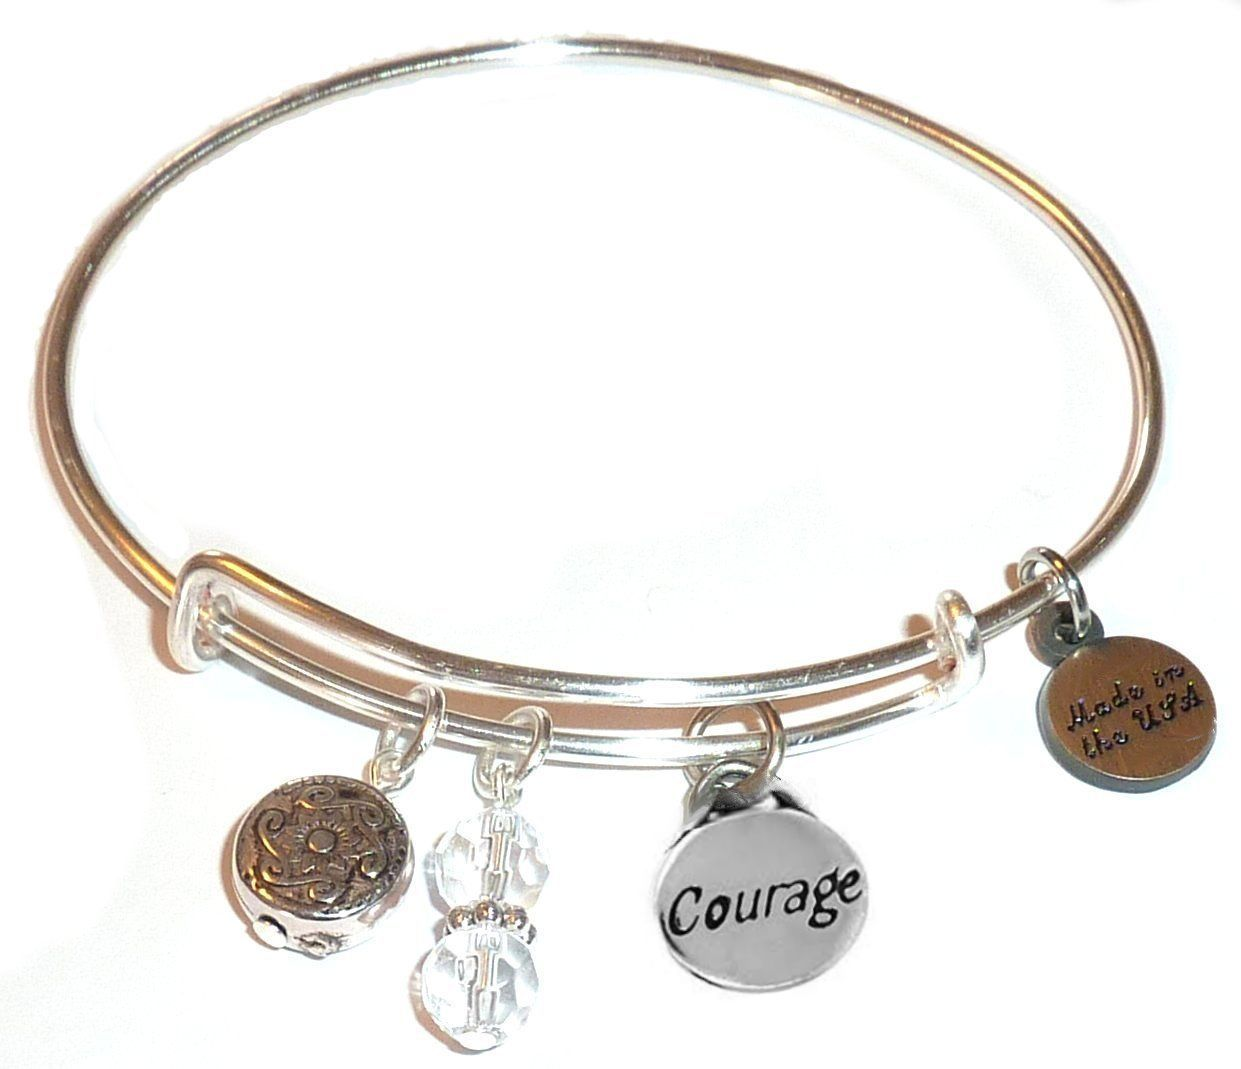 Bangle Bracelets With Charm The Best Ancg Of 2018